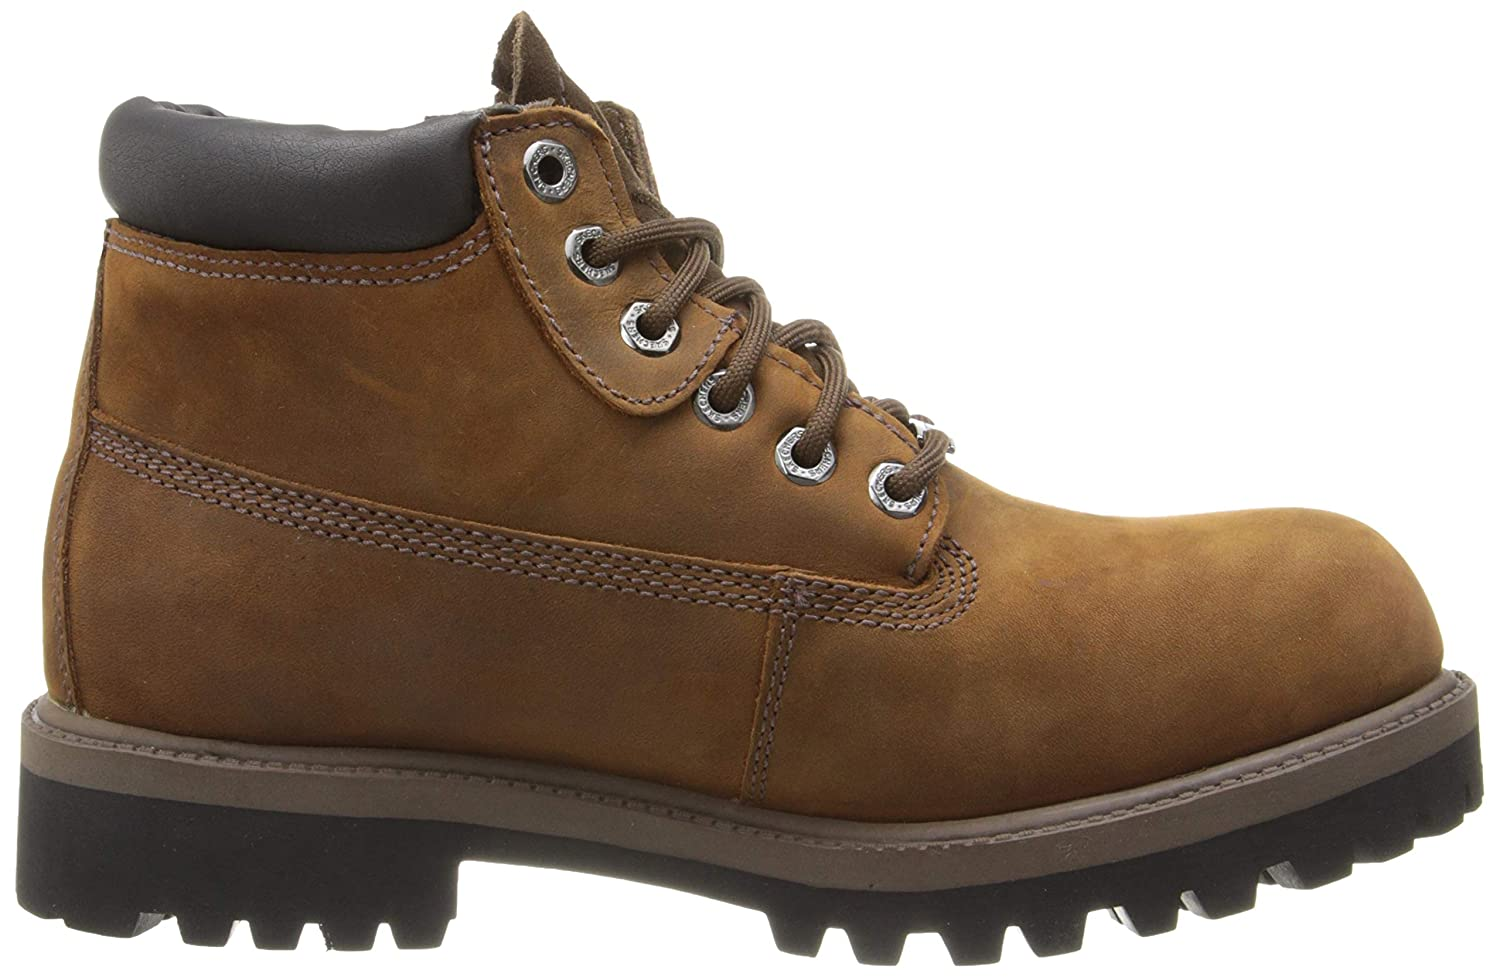 Boots Men's Skechers Alley Cats Grand Brown Canada on sale